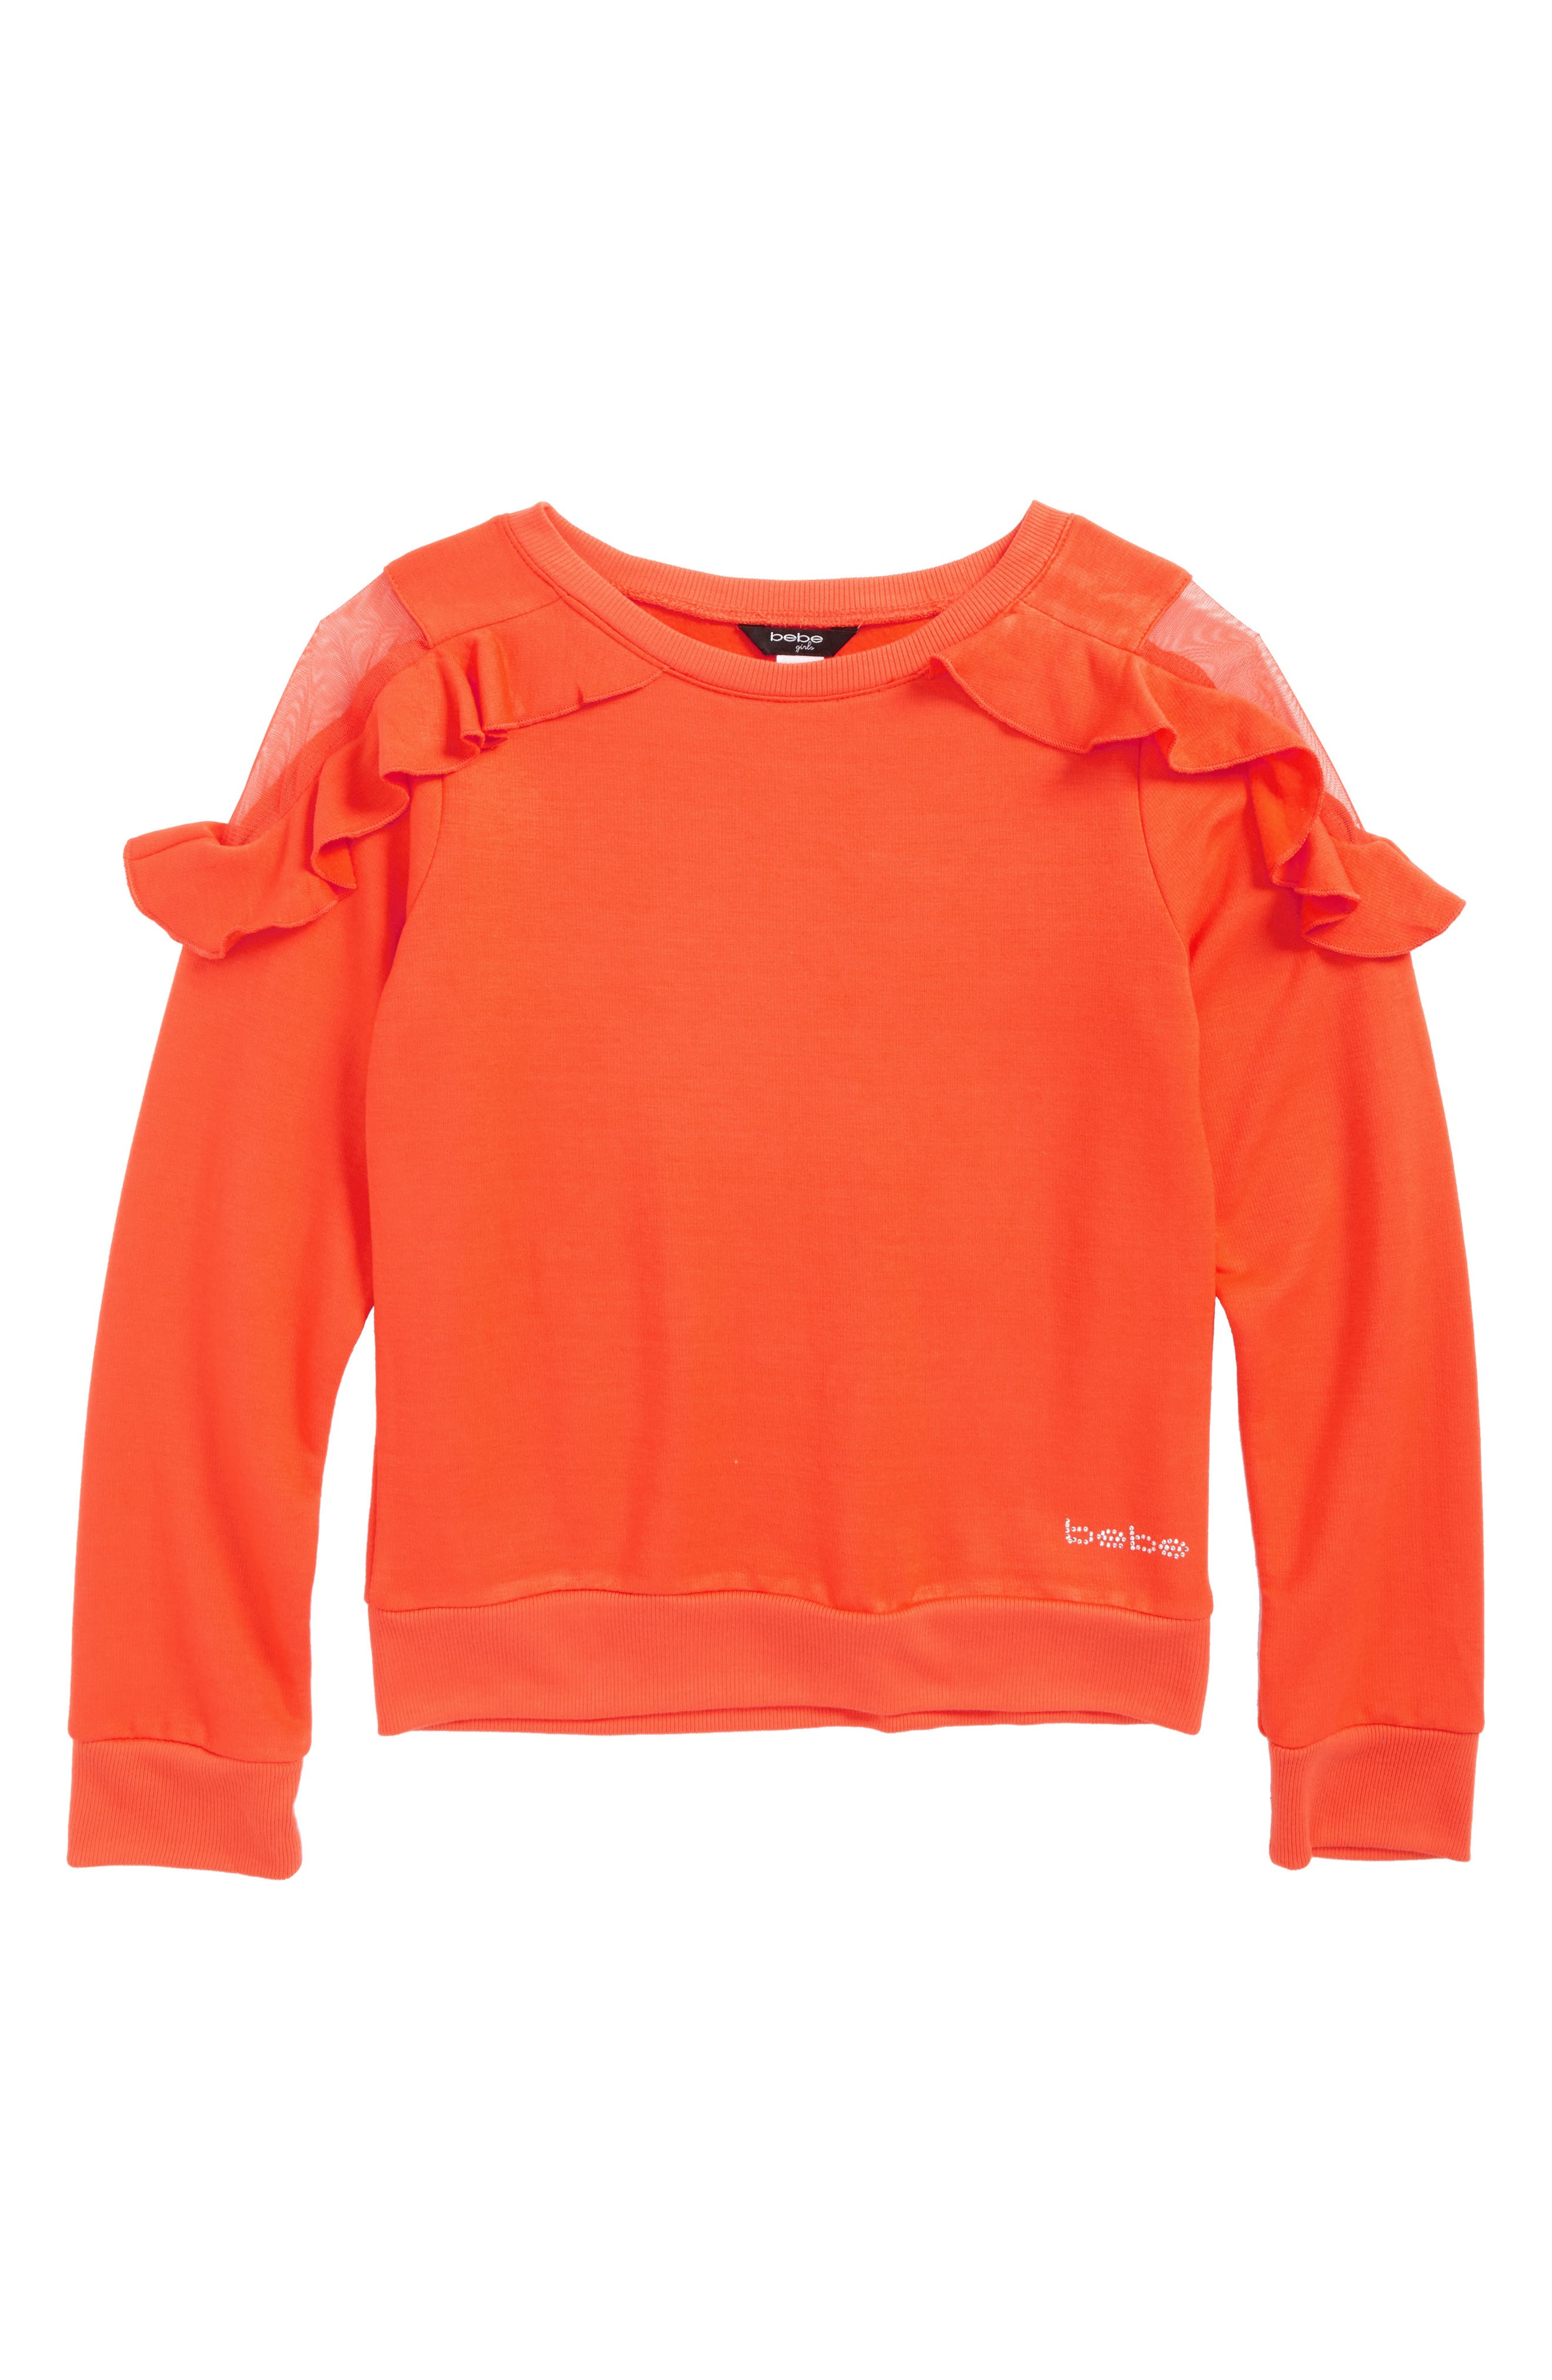 Alternate Image 1 Selected - bebe Mesh Shoulder Sweatshirt (Big Girls)